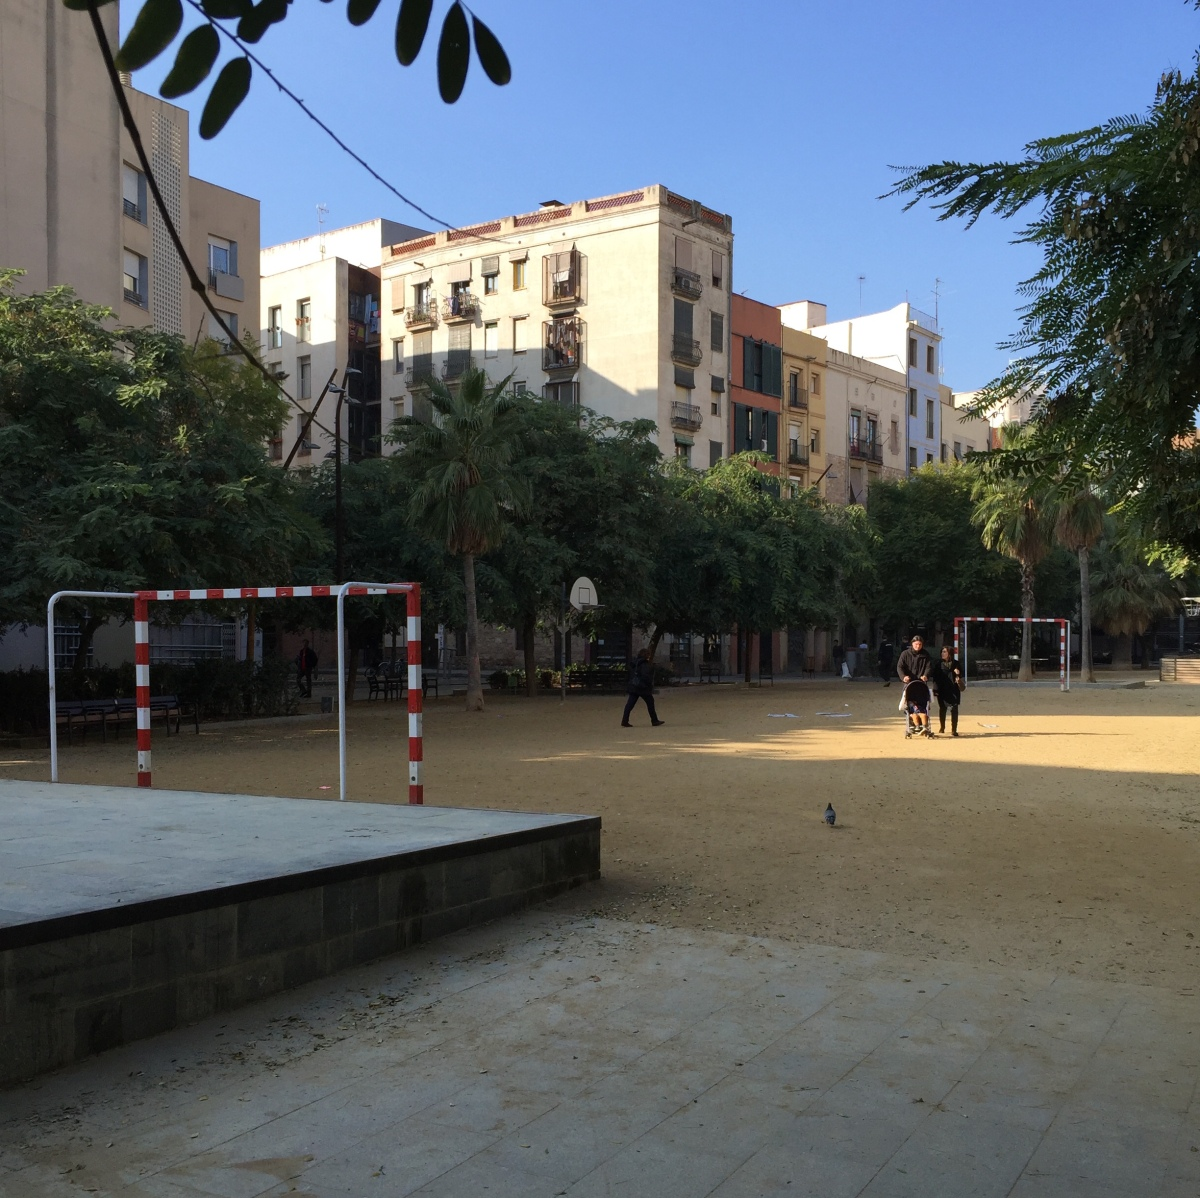 Spanish street soccer culture